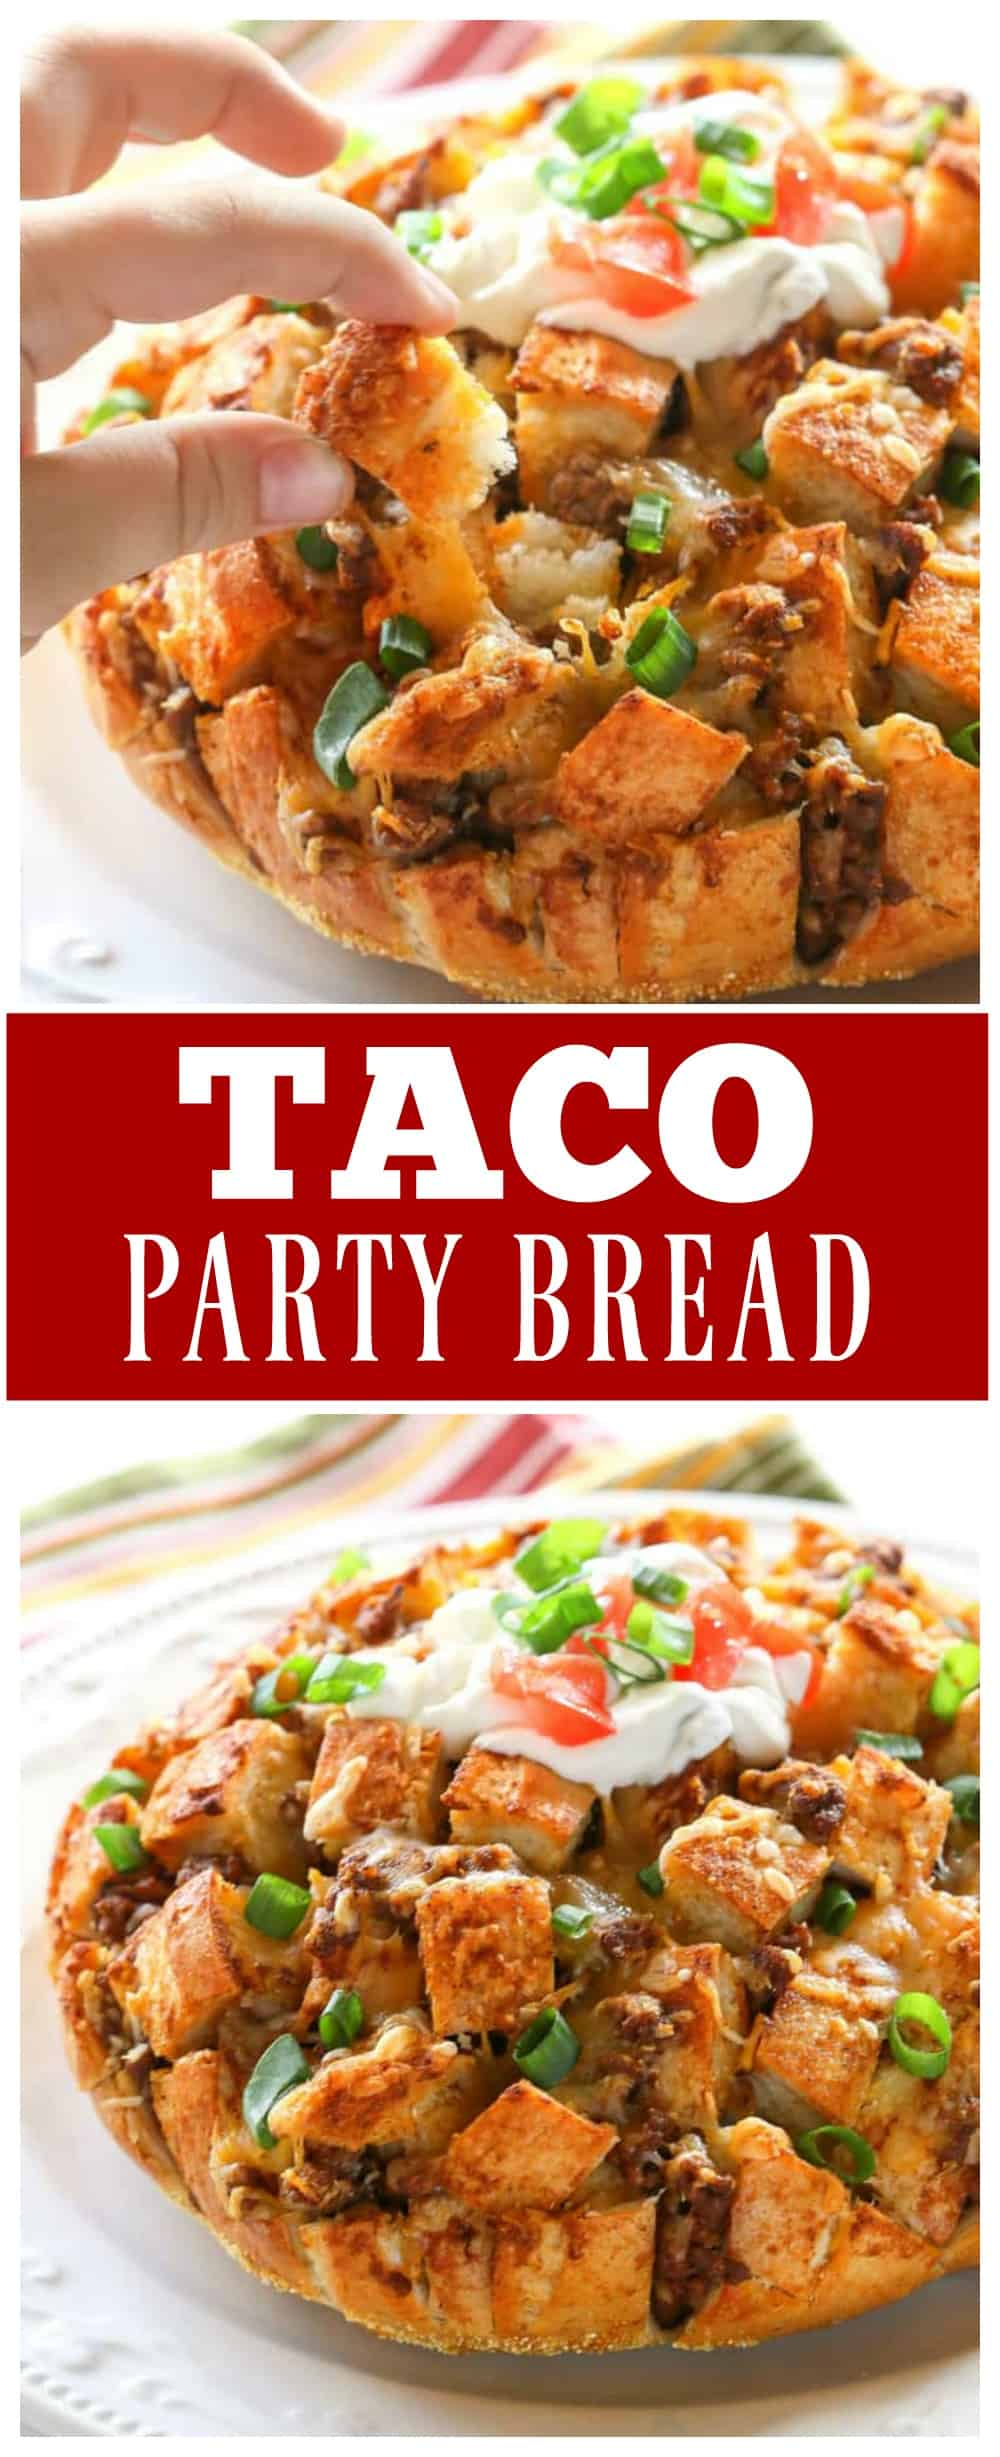 Taco Party Bread